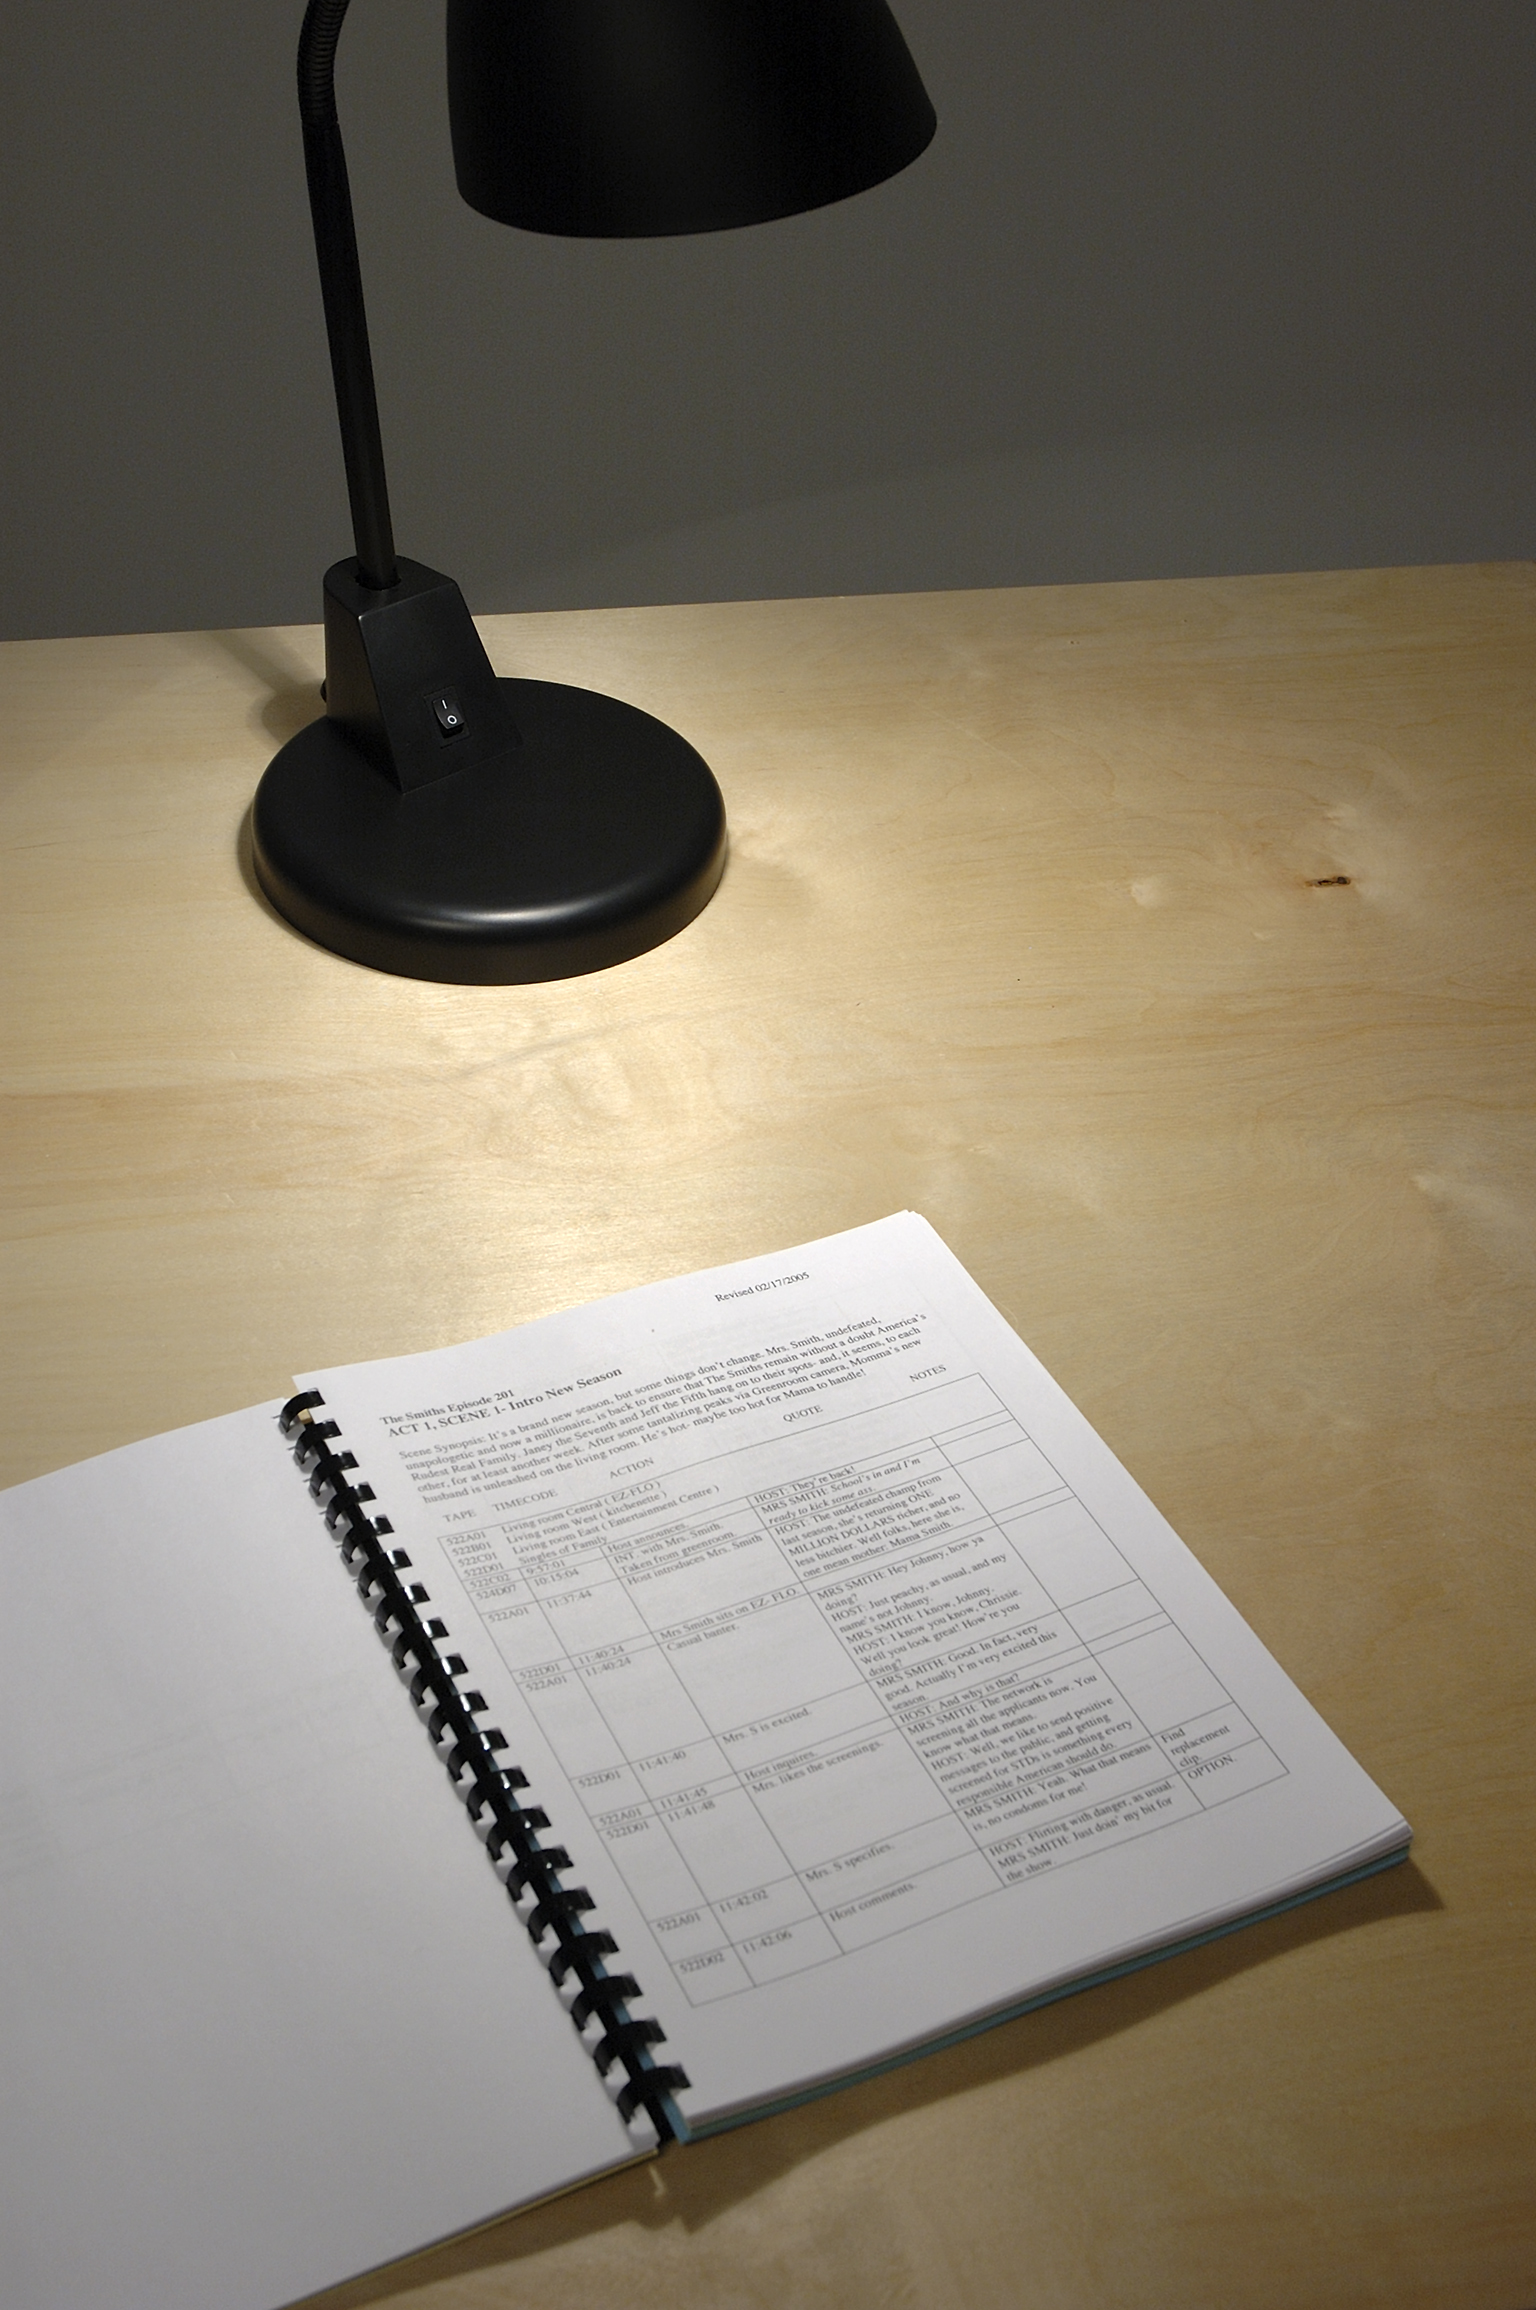 ​Isabelle Pauwels, More or Less Square: A Book in Three Parts, 2006, part one: computer printed log sheets, part two: ledger sheets typed with electronic typewriter, part three: manually typewritten script, timecard, introductions DVD, dimensions variable by